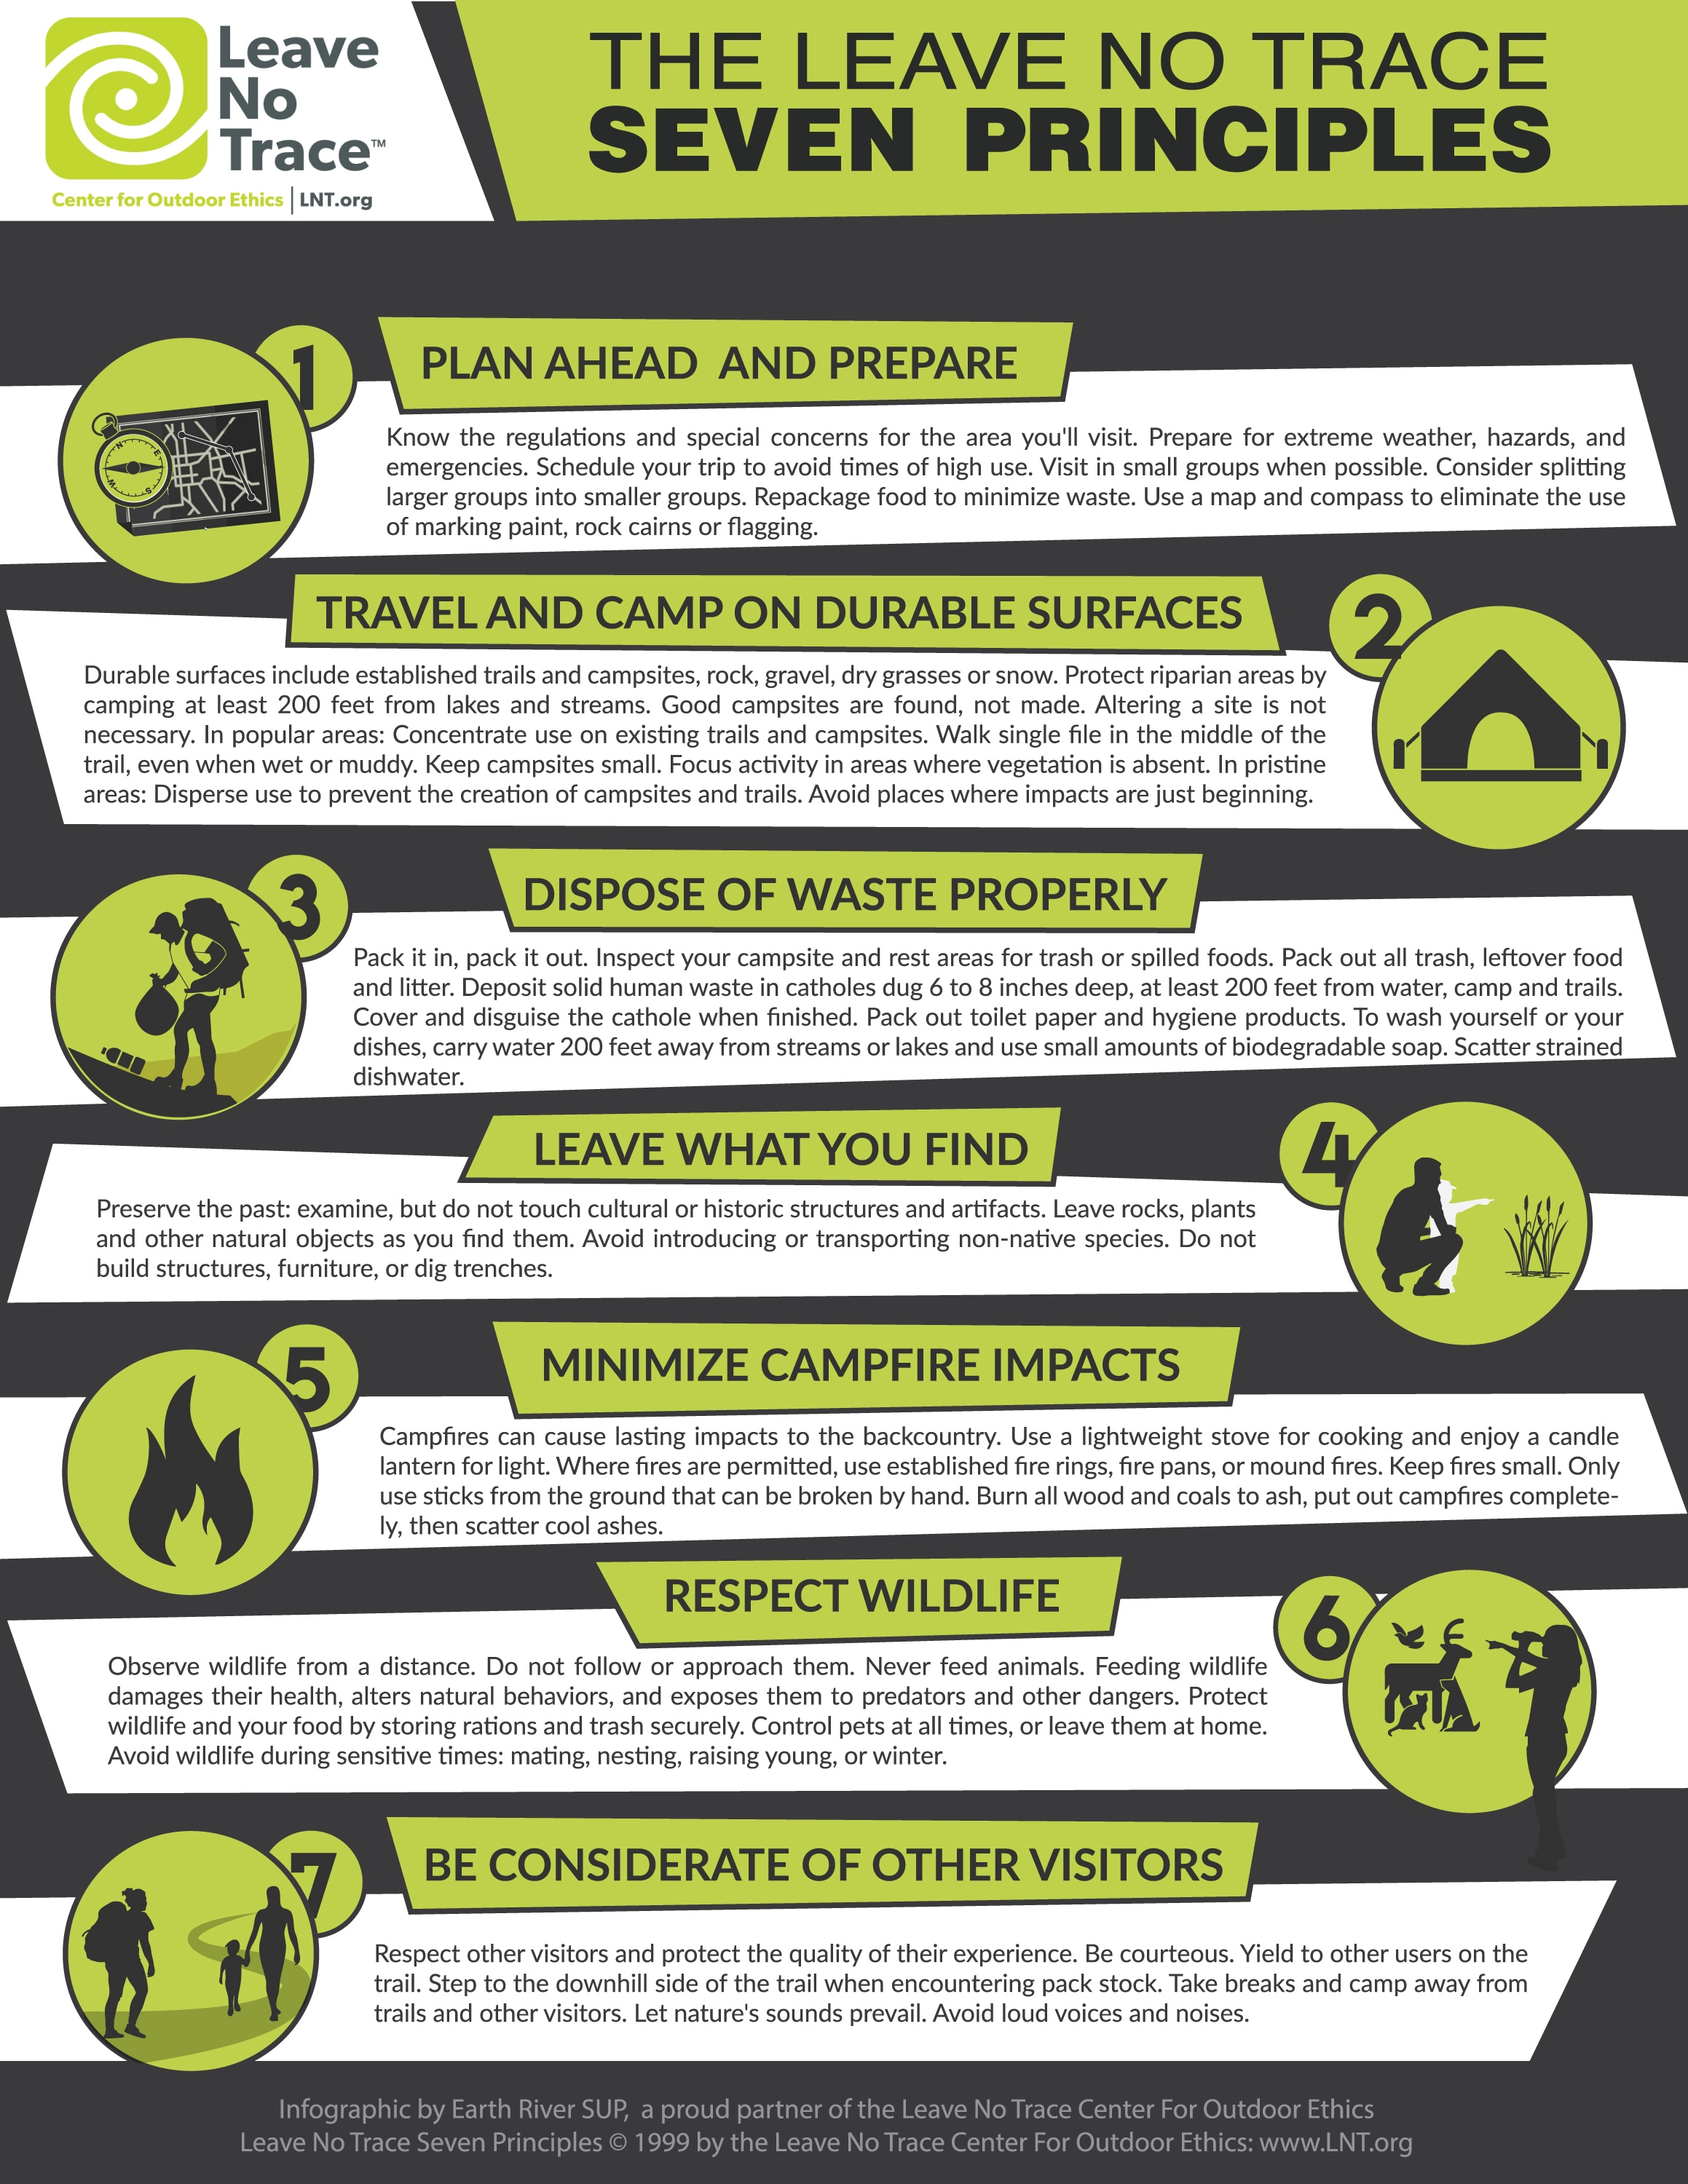 Leave No Trace Seven Principles Infographic